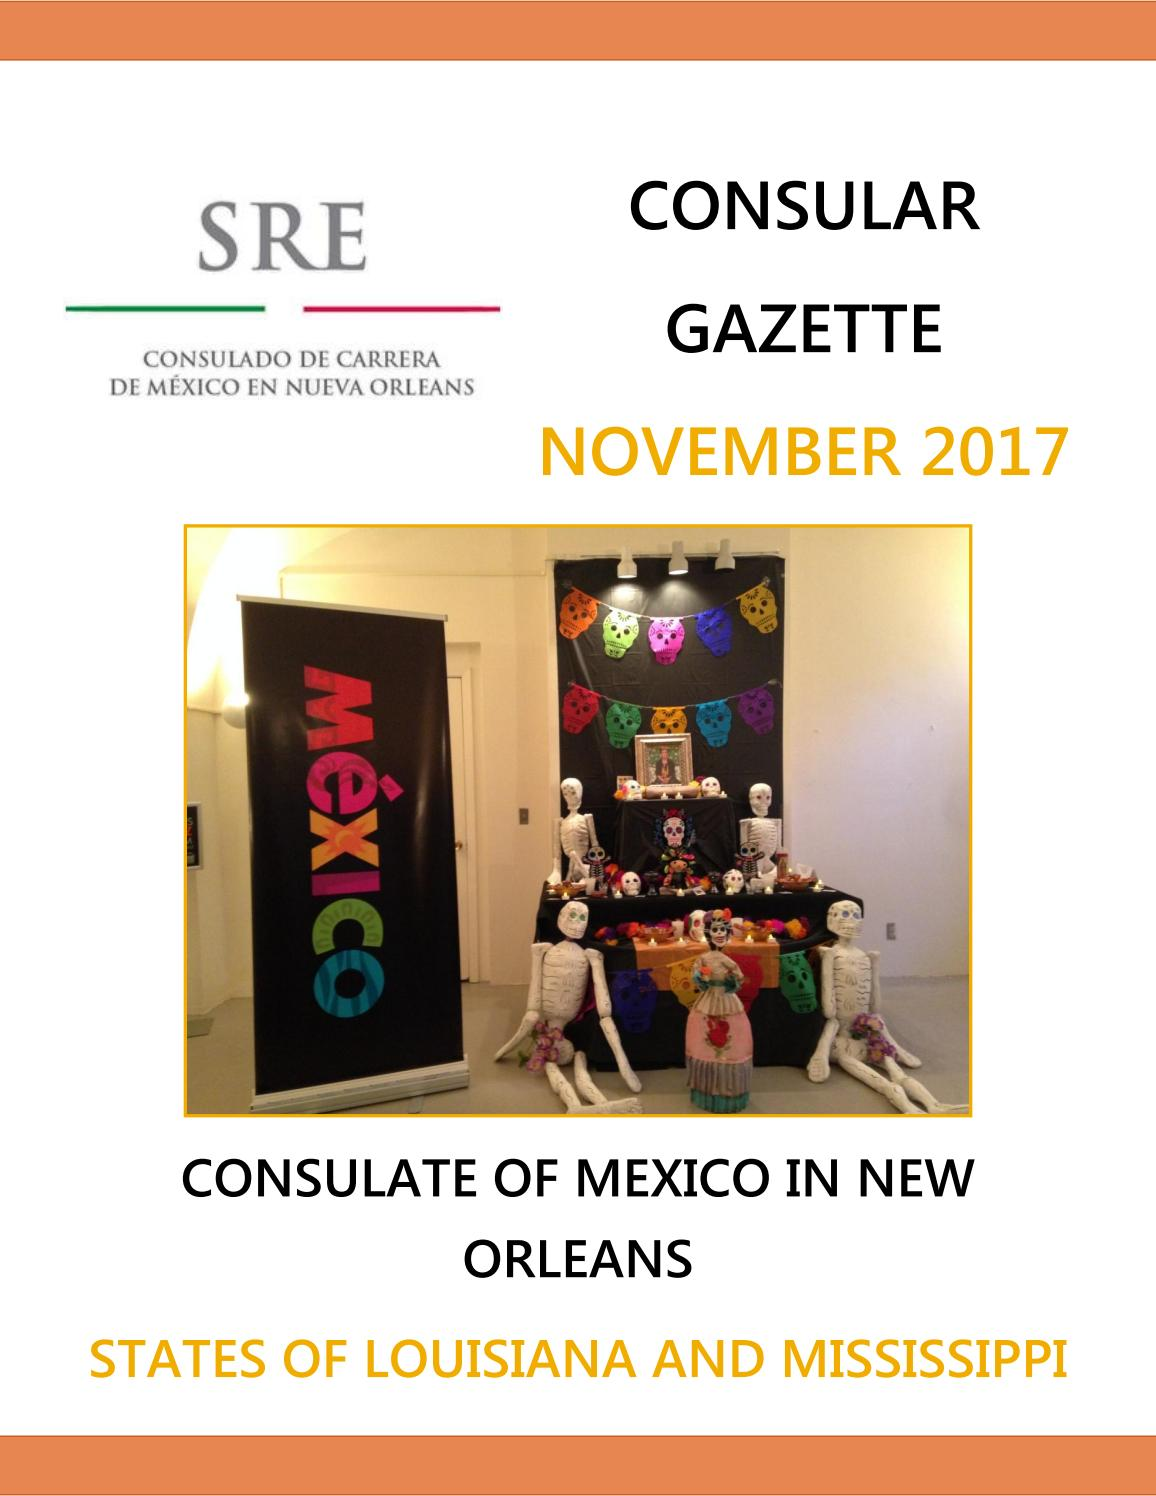 Consular Gazette November 2017, Consulate of Mexico in New Orleans ...